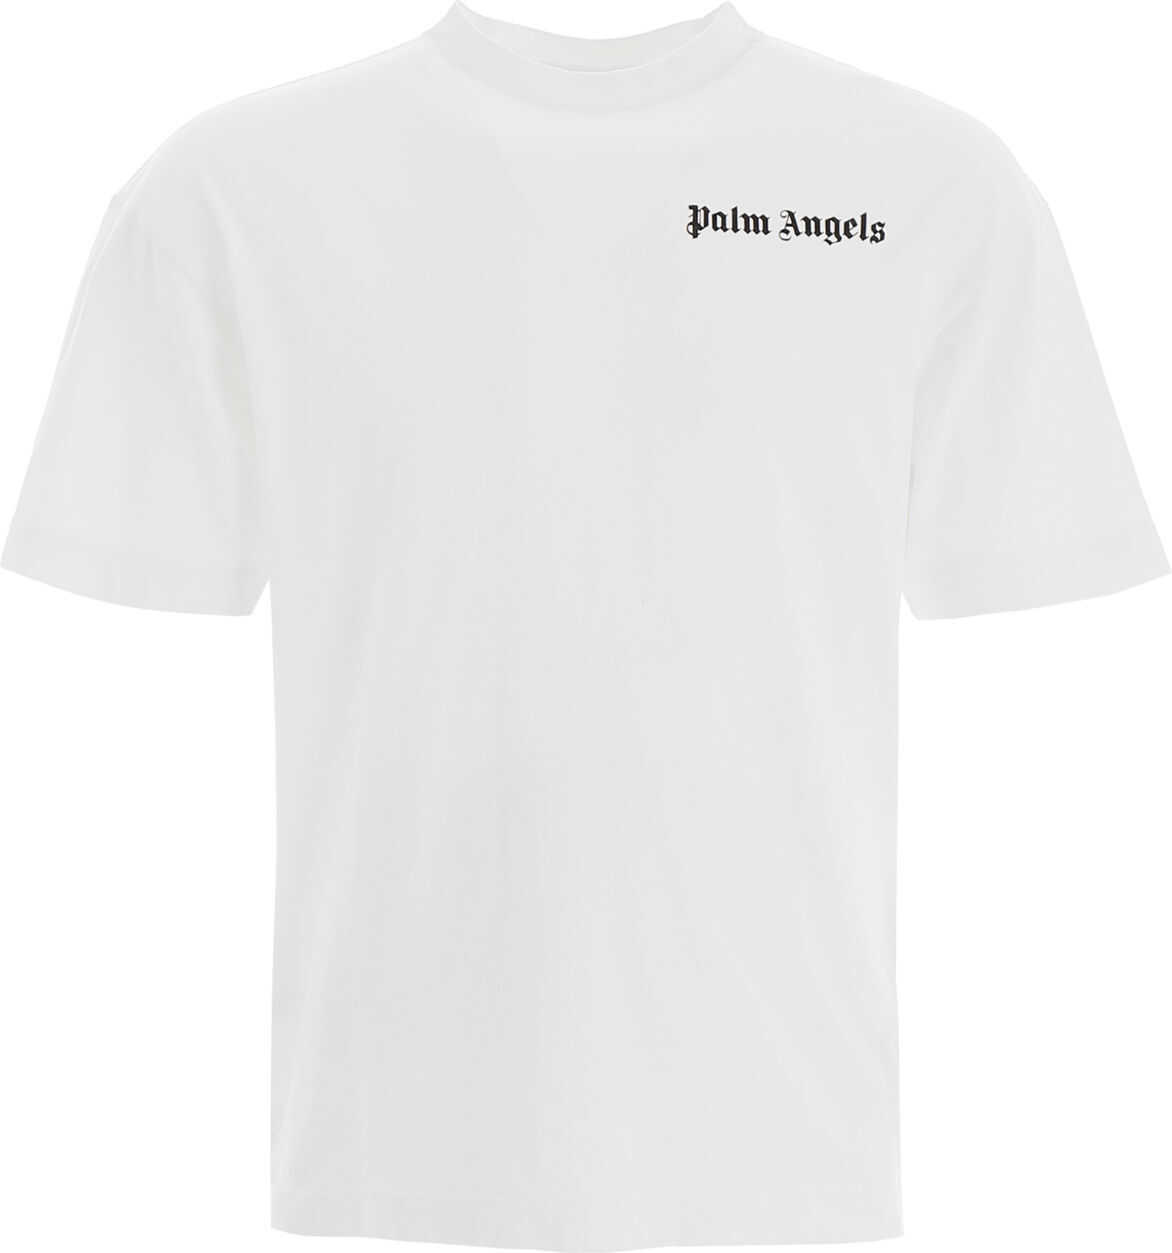 Palm Angels Logo Print T-Shirt WHITE BLACK